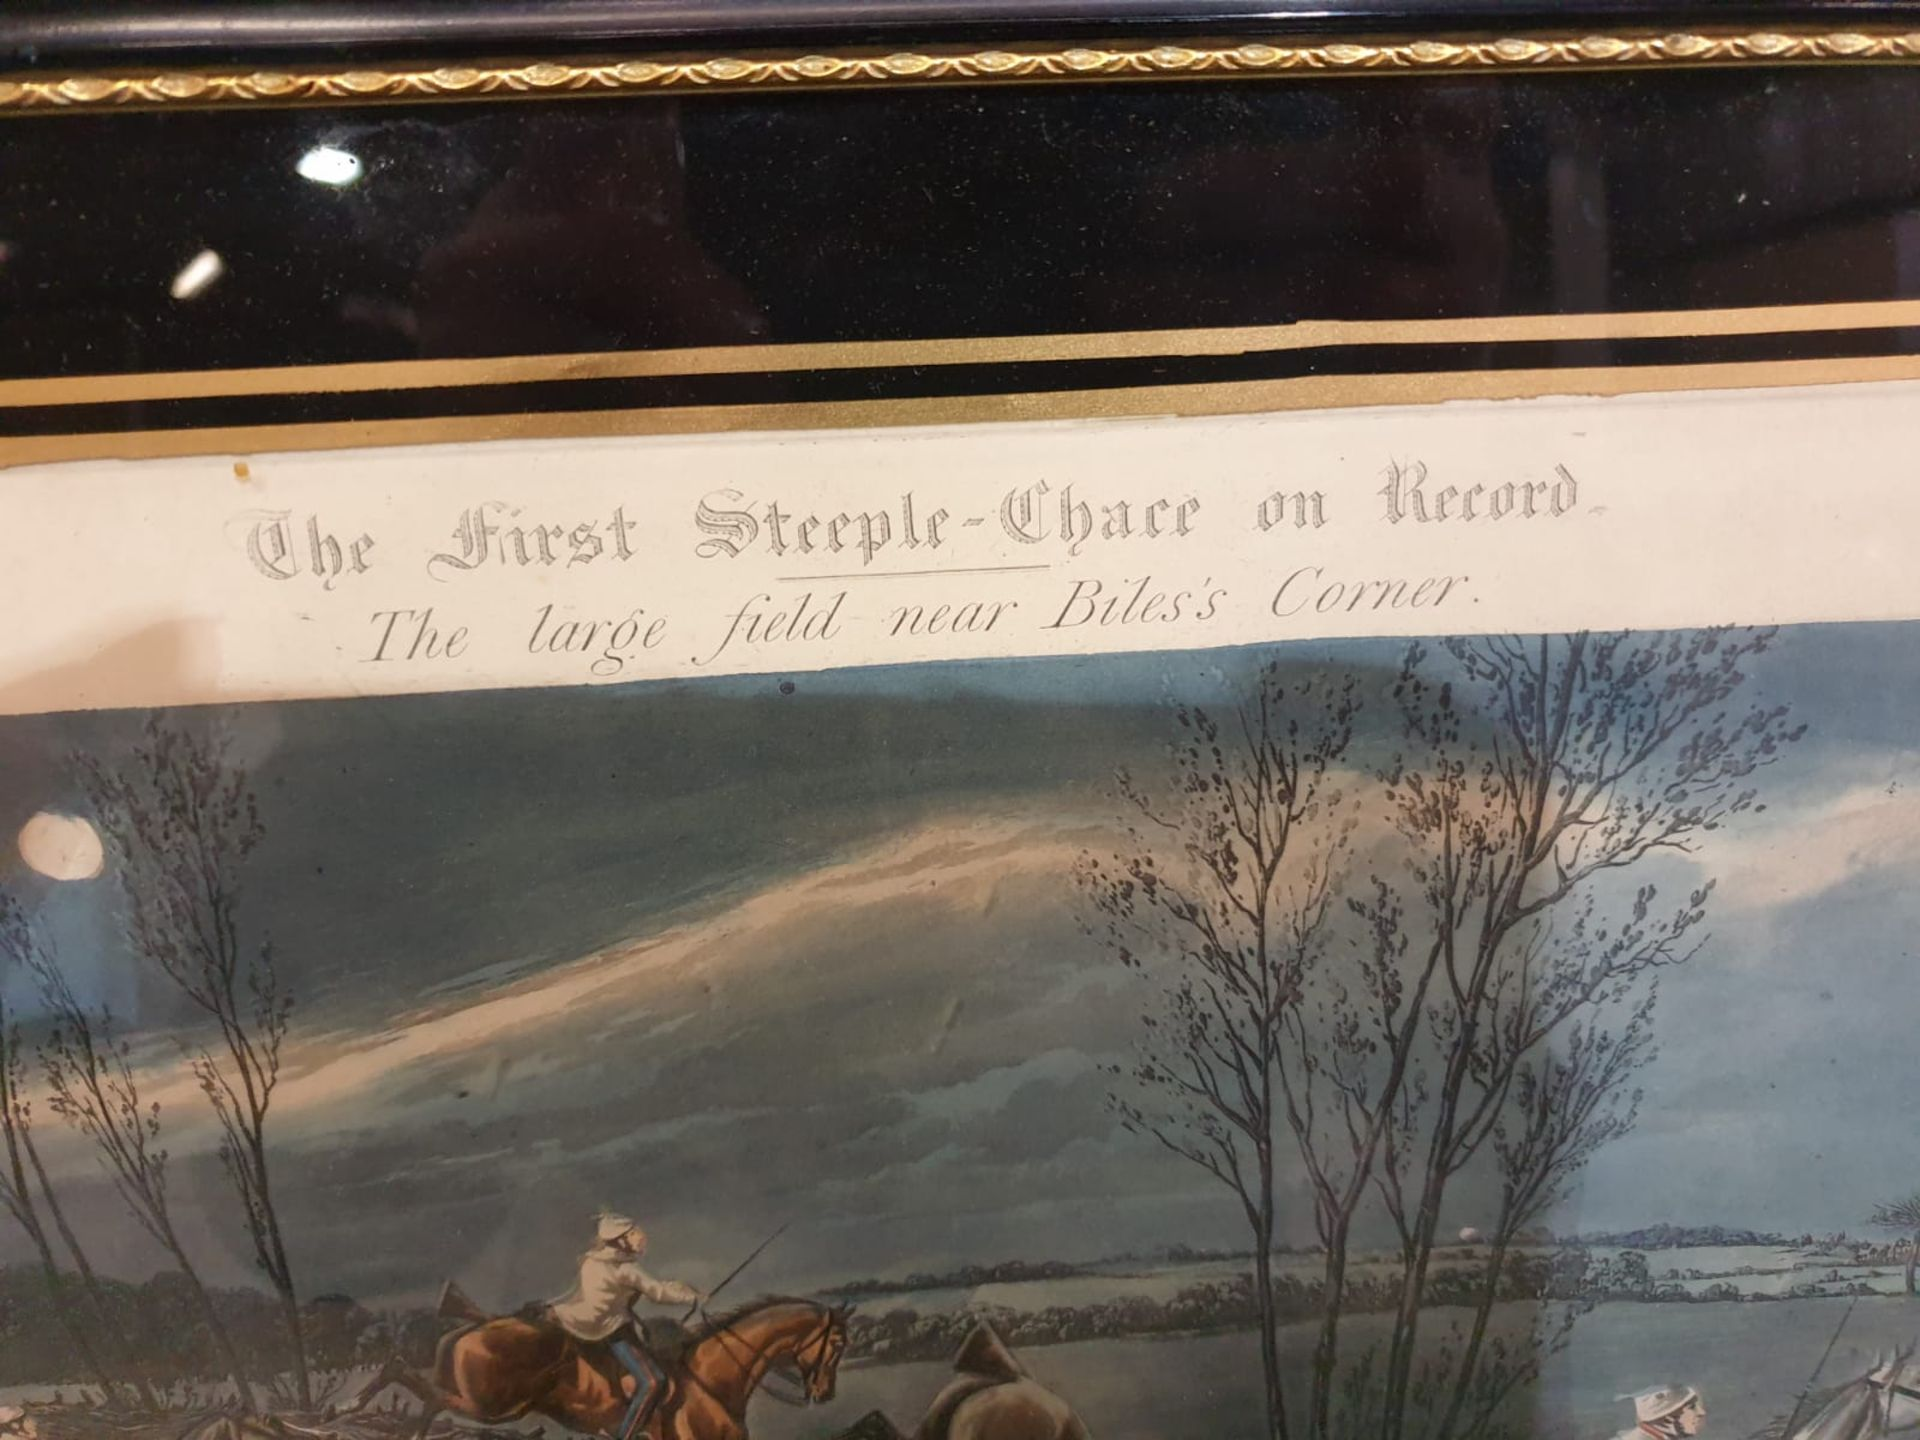 Framed vintage print The First Steeplechase on Record - The large field near Biles's corner (after - Image 4 of 5